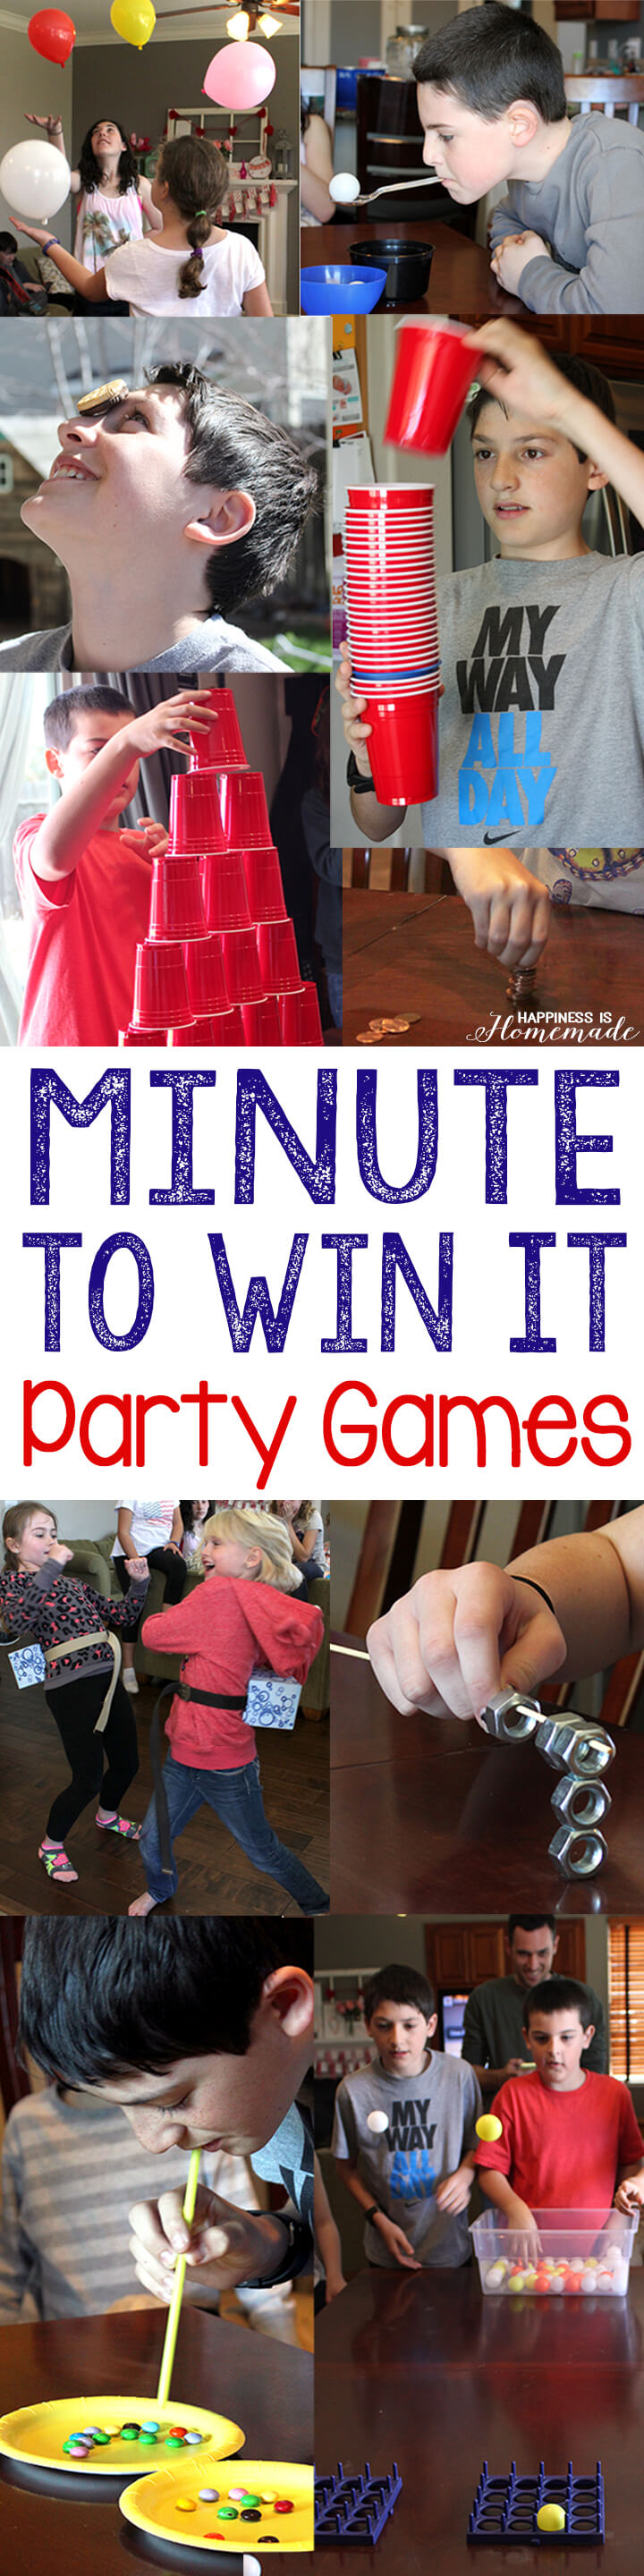 16-Year-Old Birthday Games | eHow